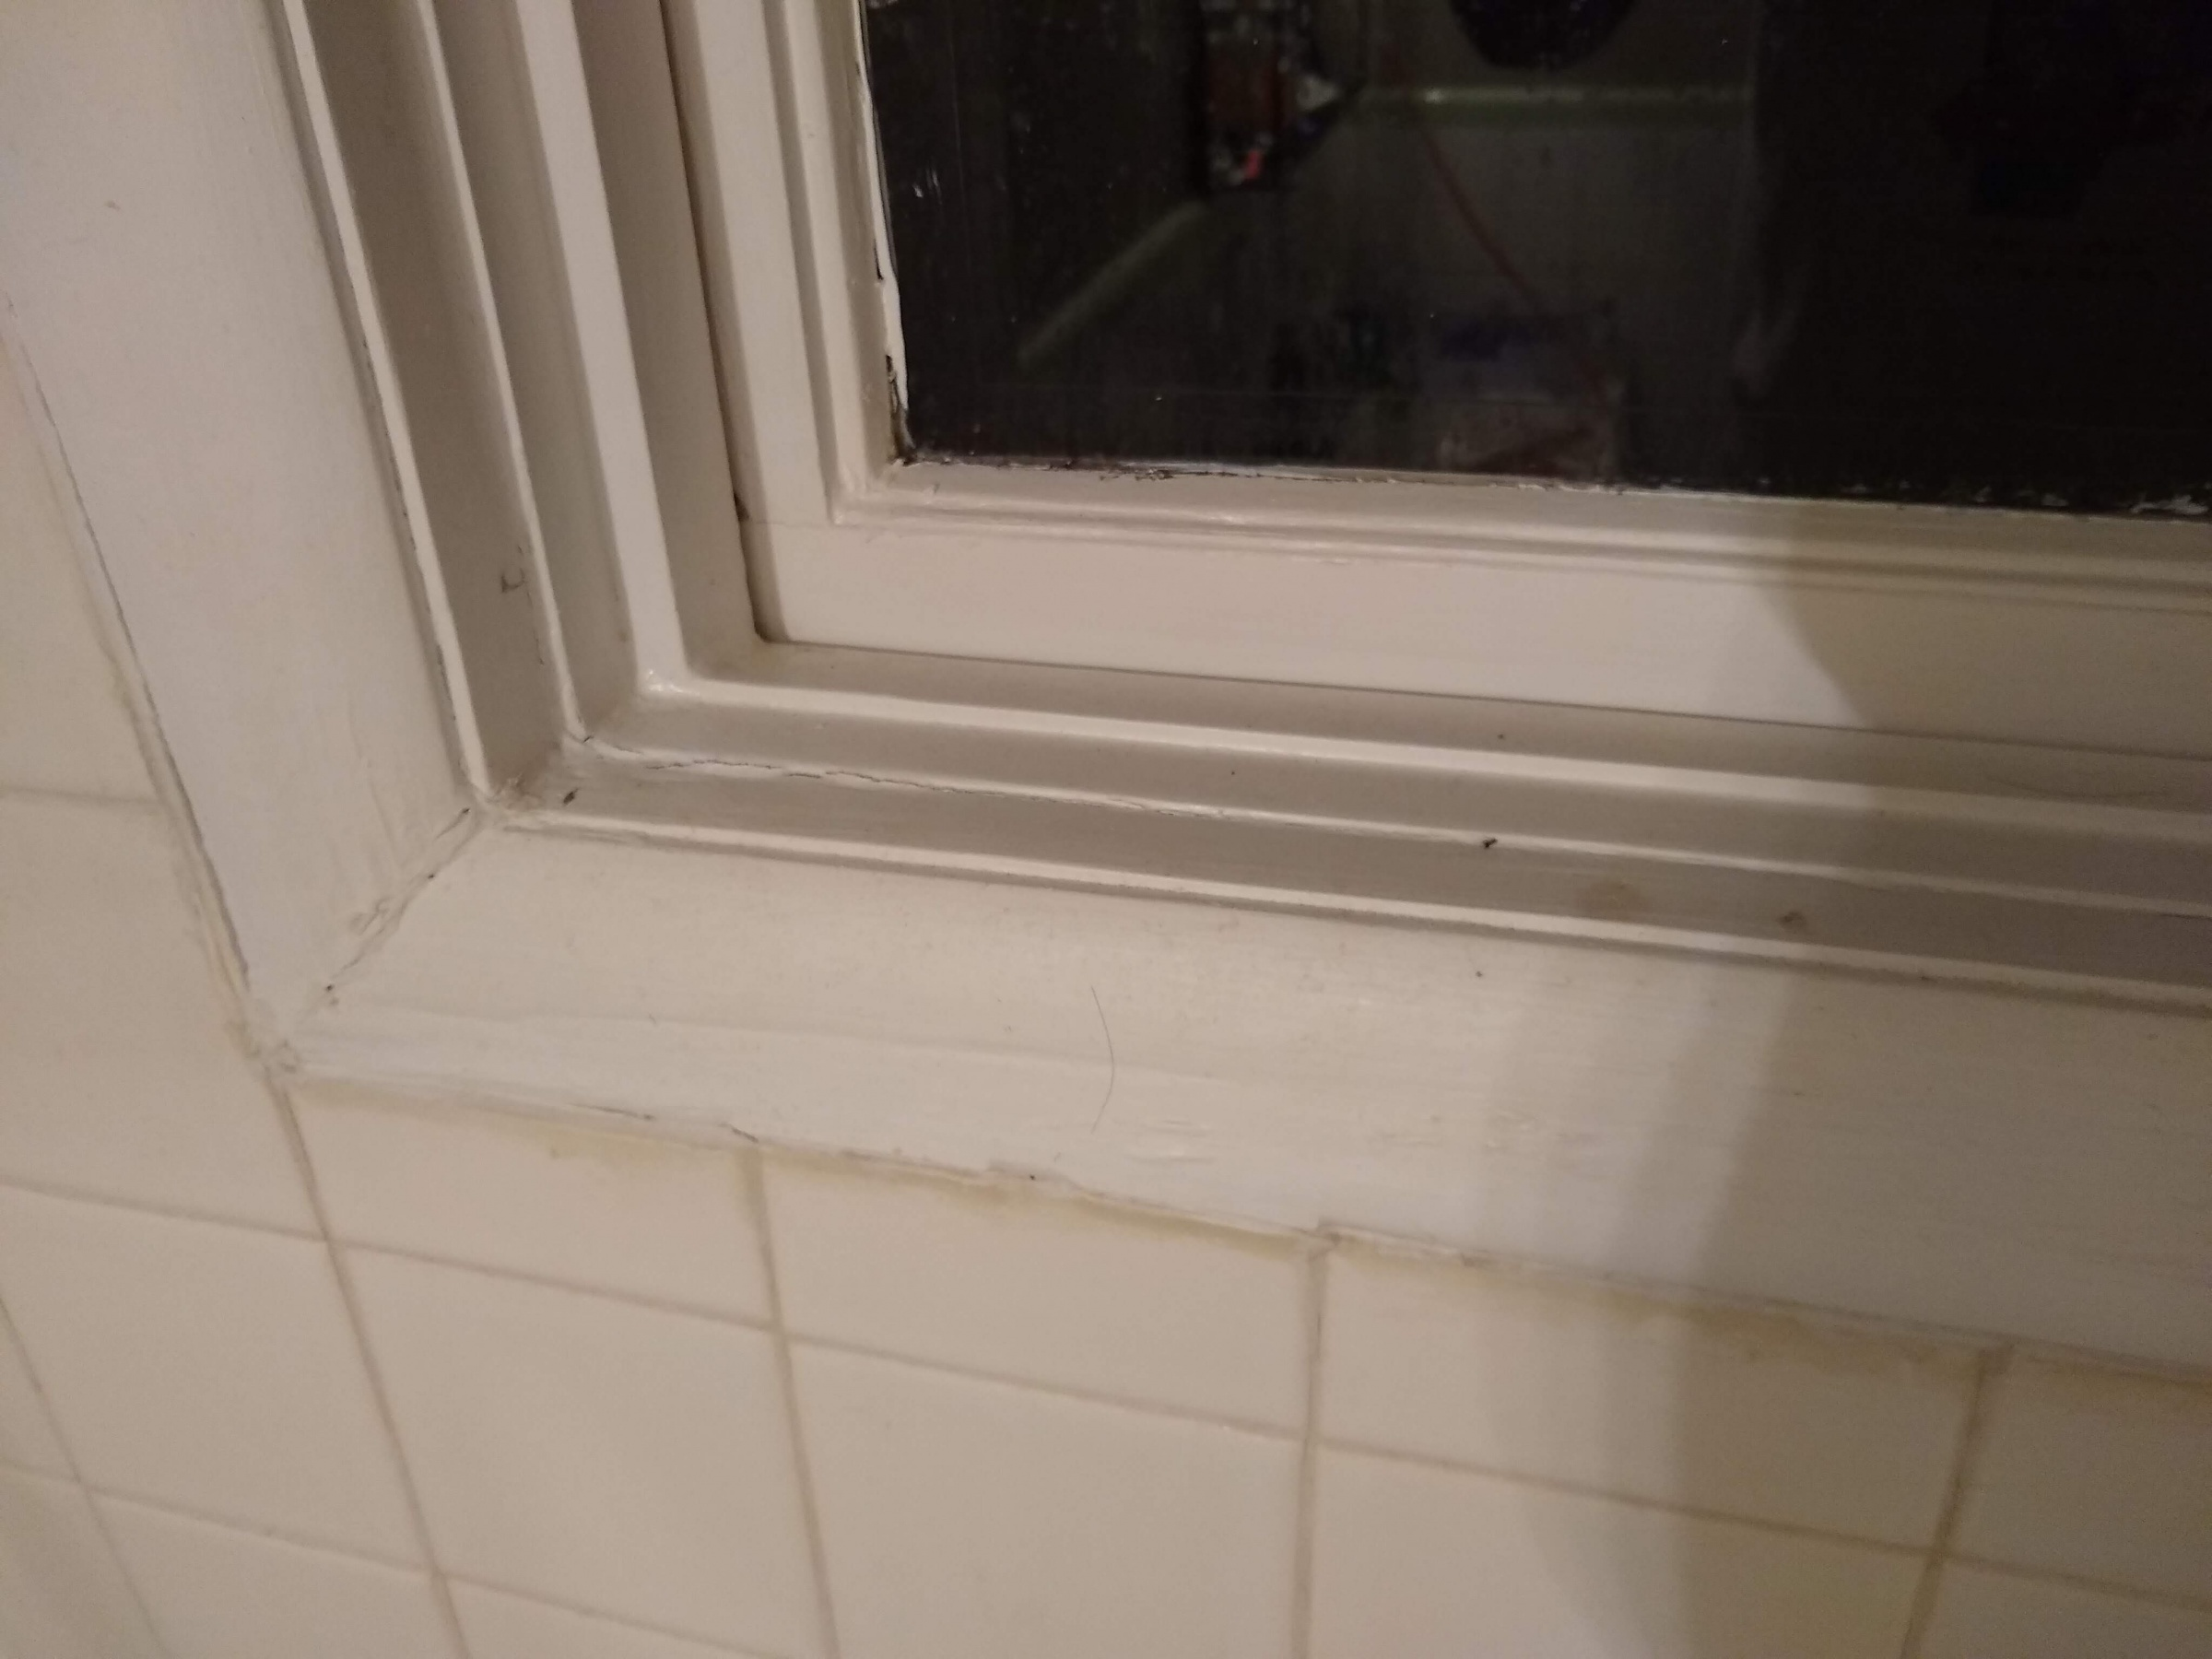 Tile around window and proper transition-img_20181102_204318426.jpg